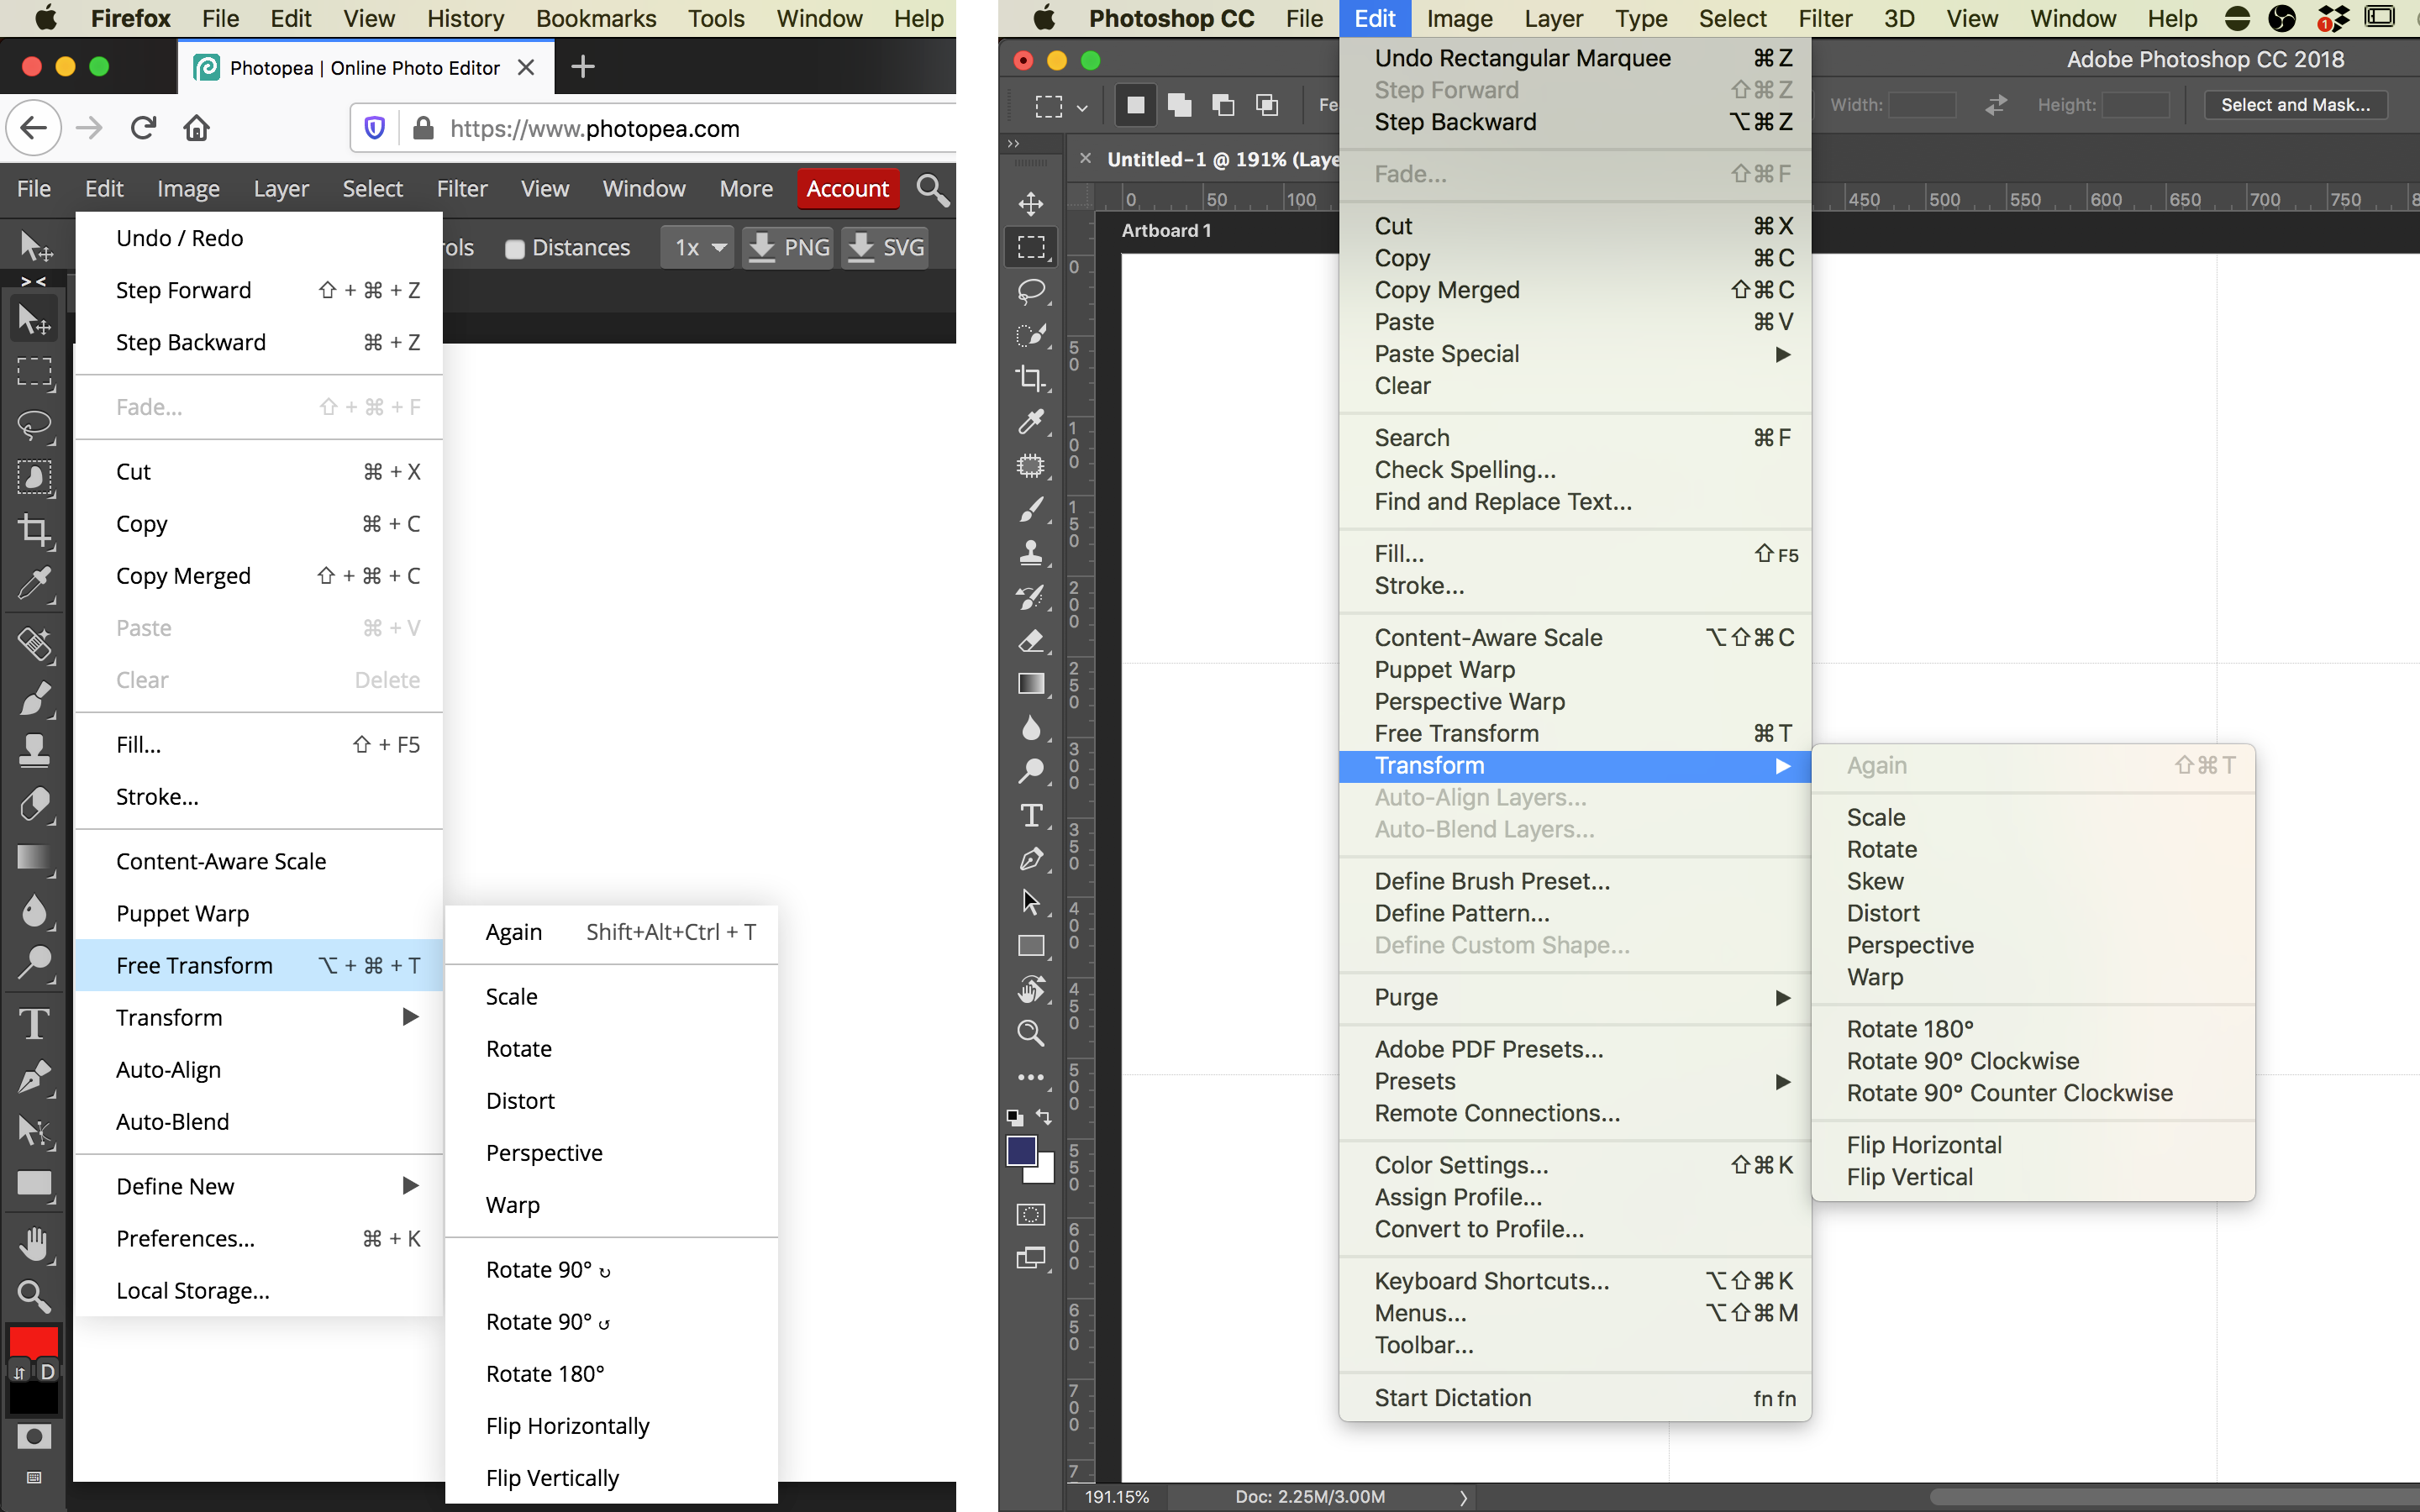 Two side-by-side screenshots of the Photopea and Adobe Photoshop user interfaces, with the mouse cursor hovering over the Transform menu item in the Edit menu; the Transform sub menu is almost identical in both screenshots.